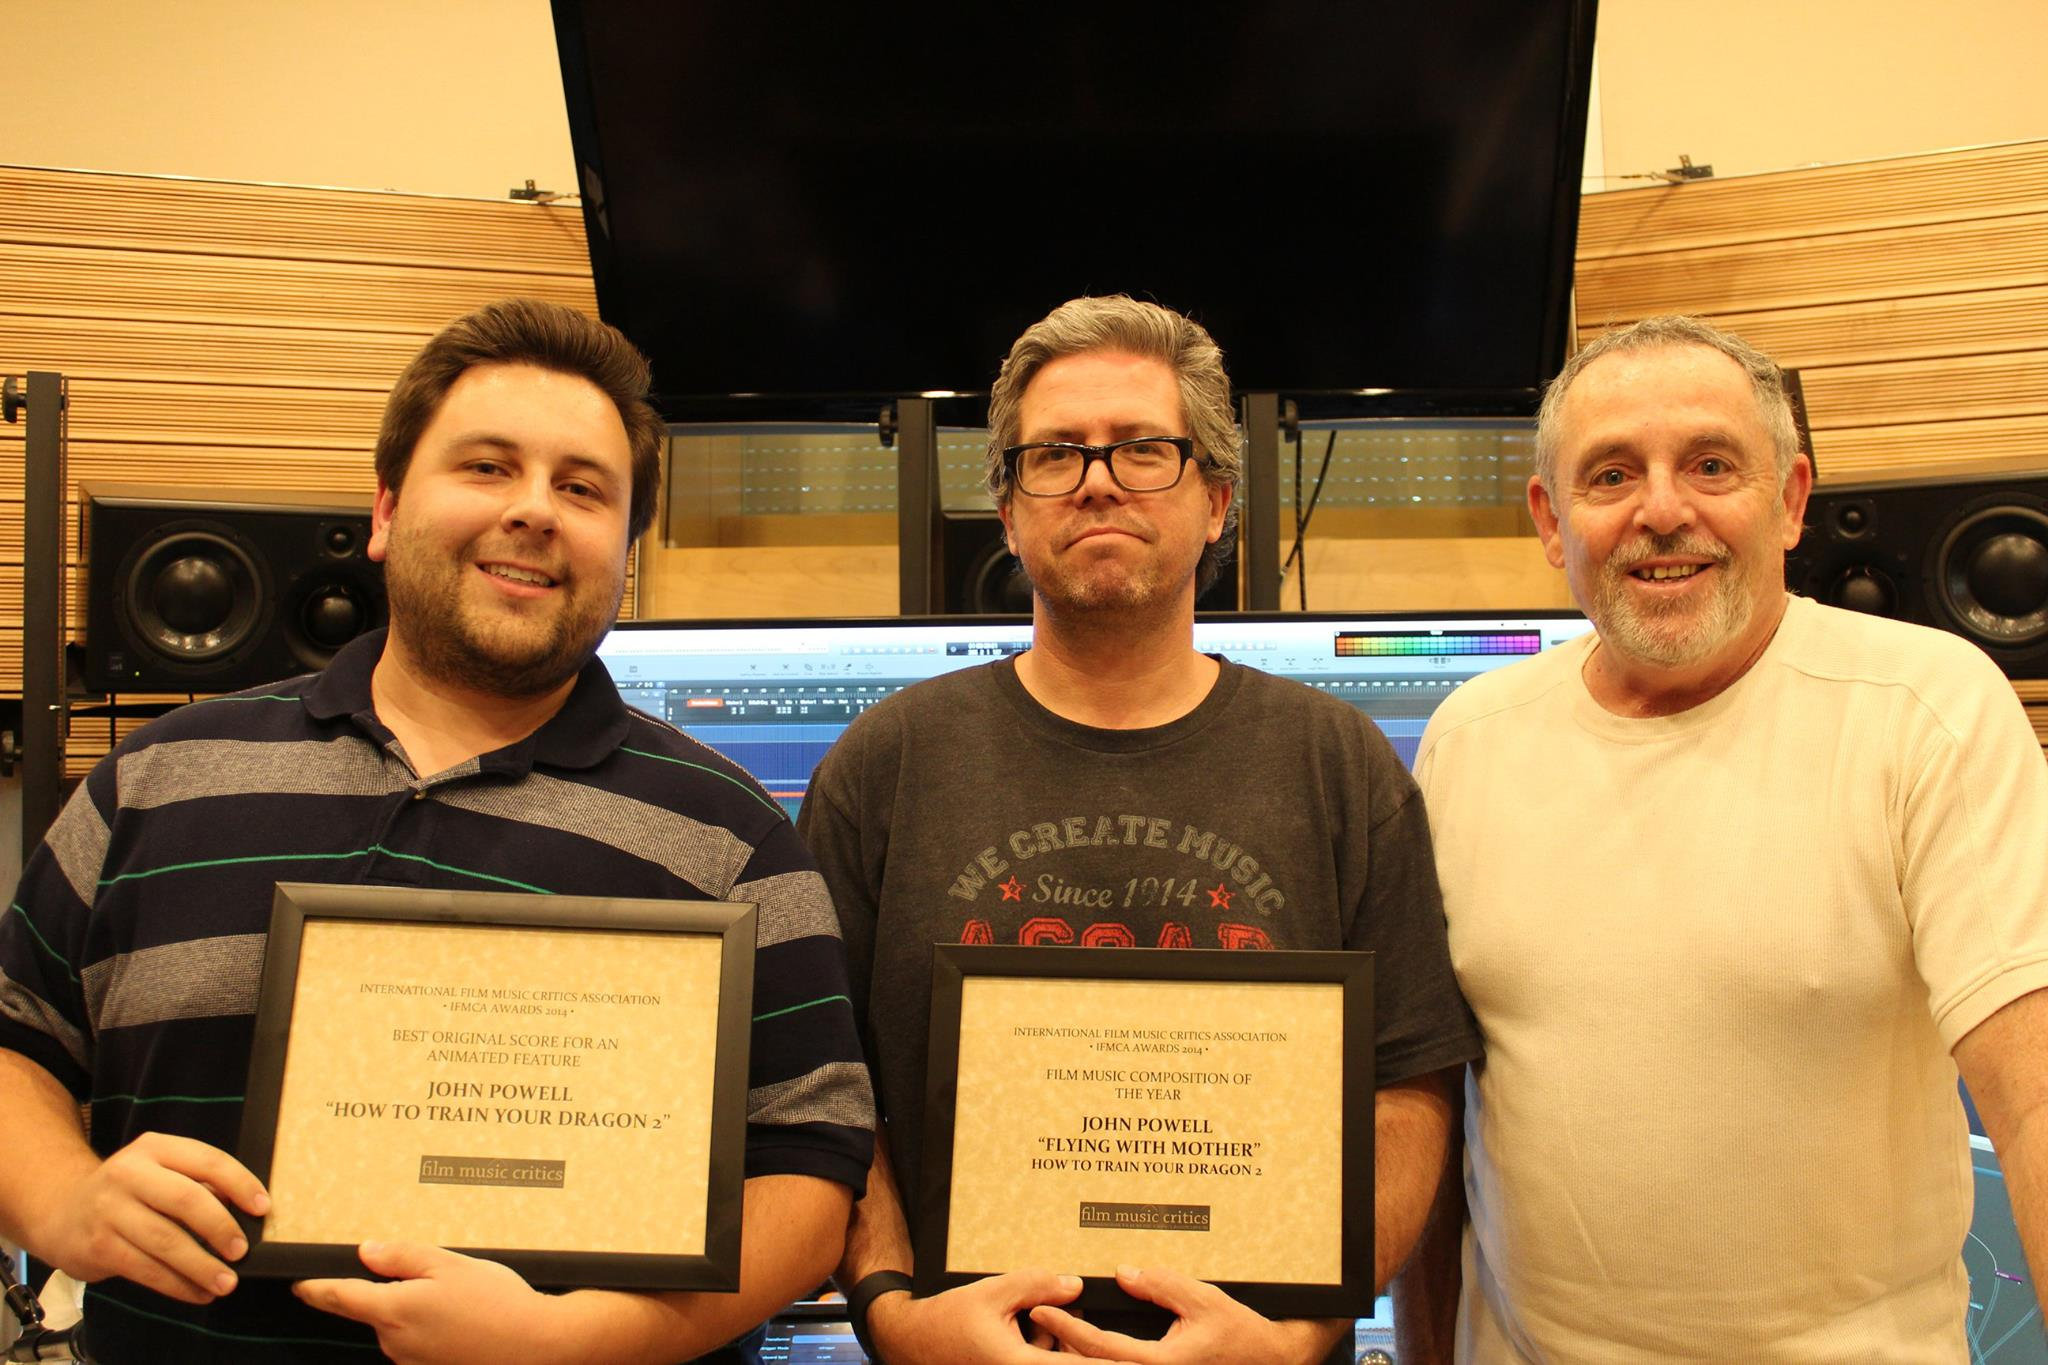 John Powell receives IFMCA Awards for How to Train Your Dragon 2